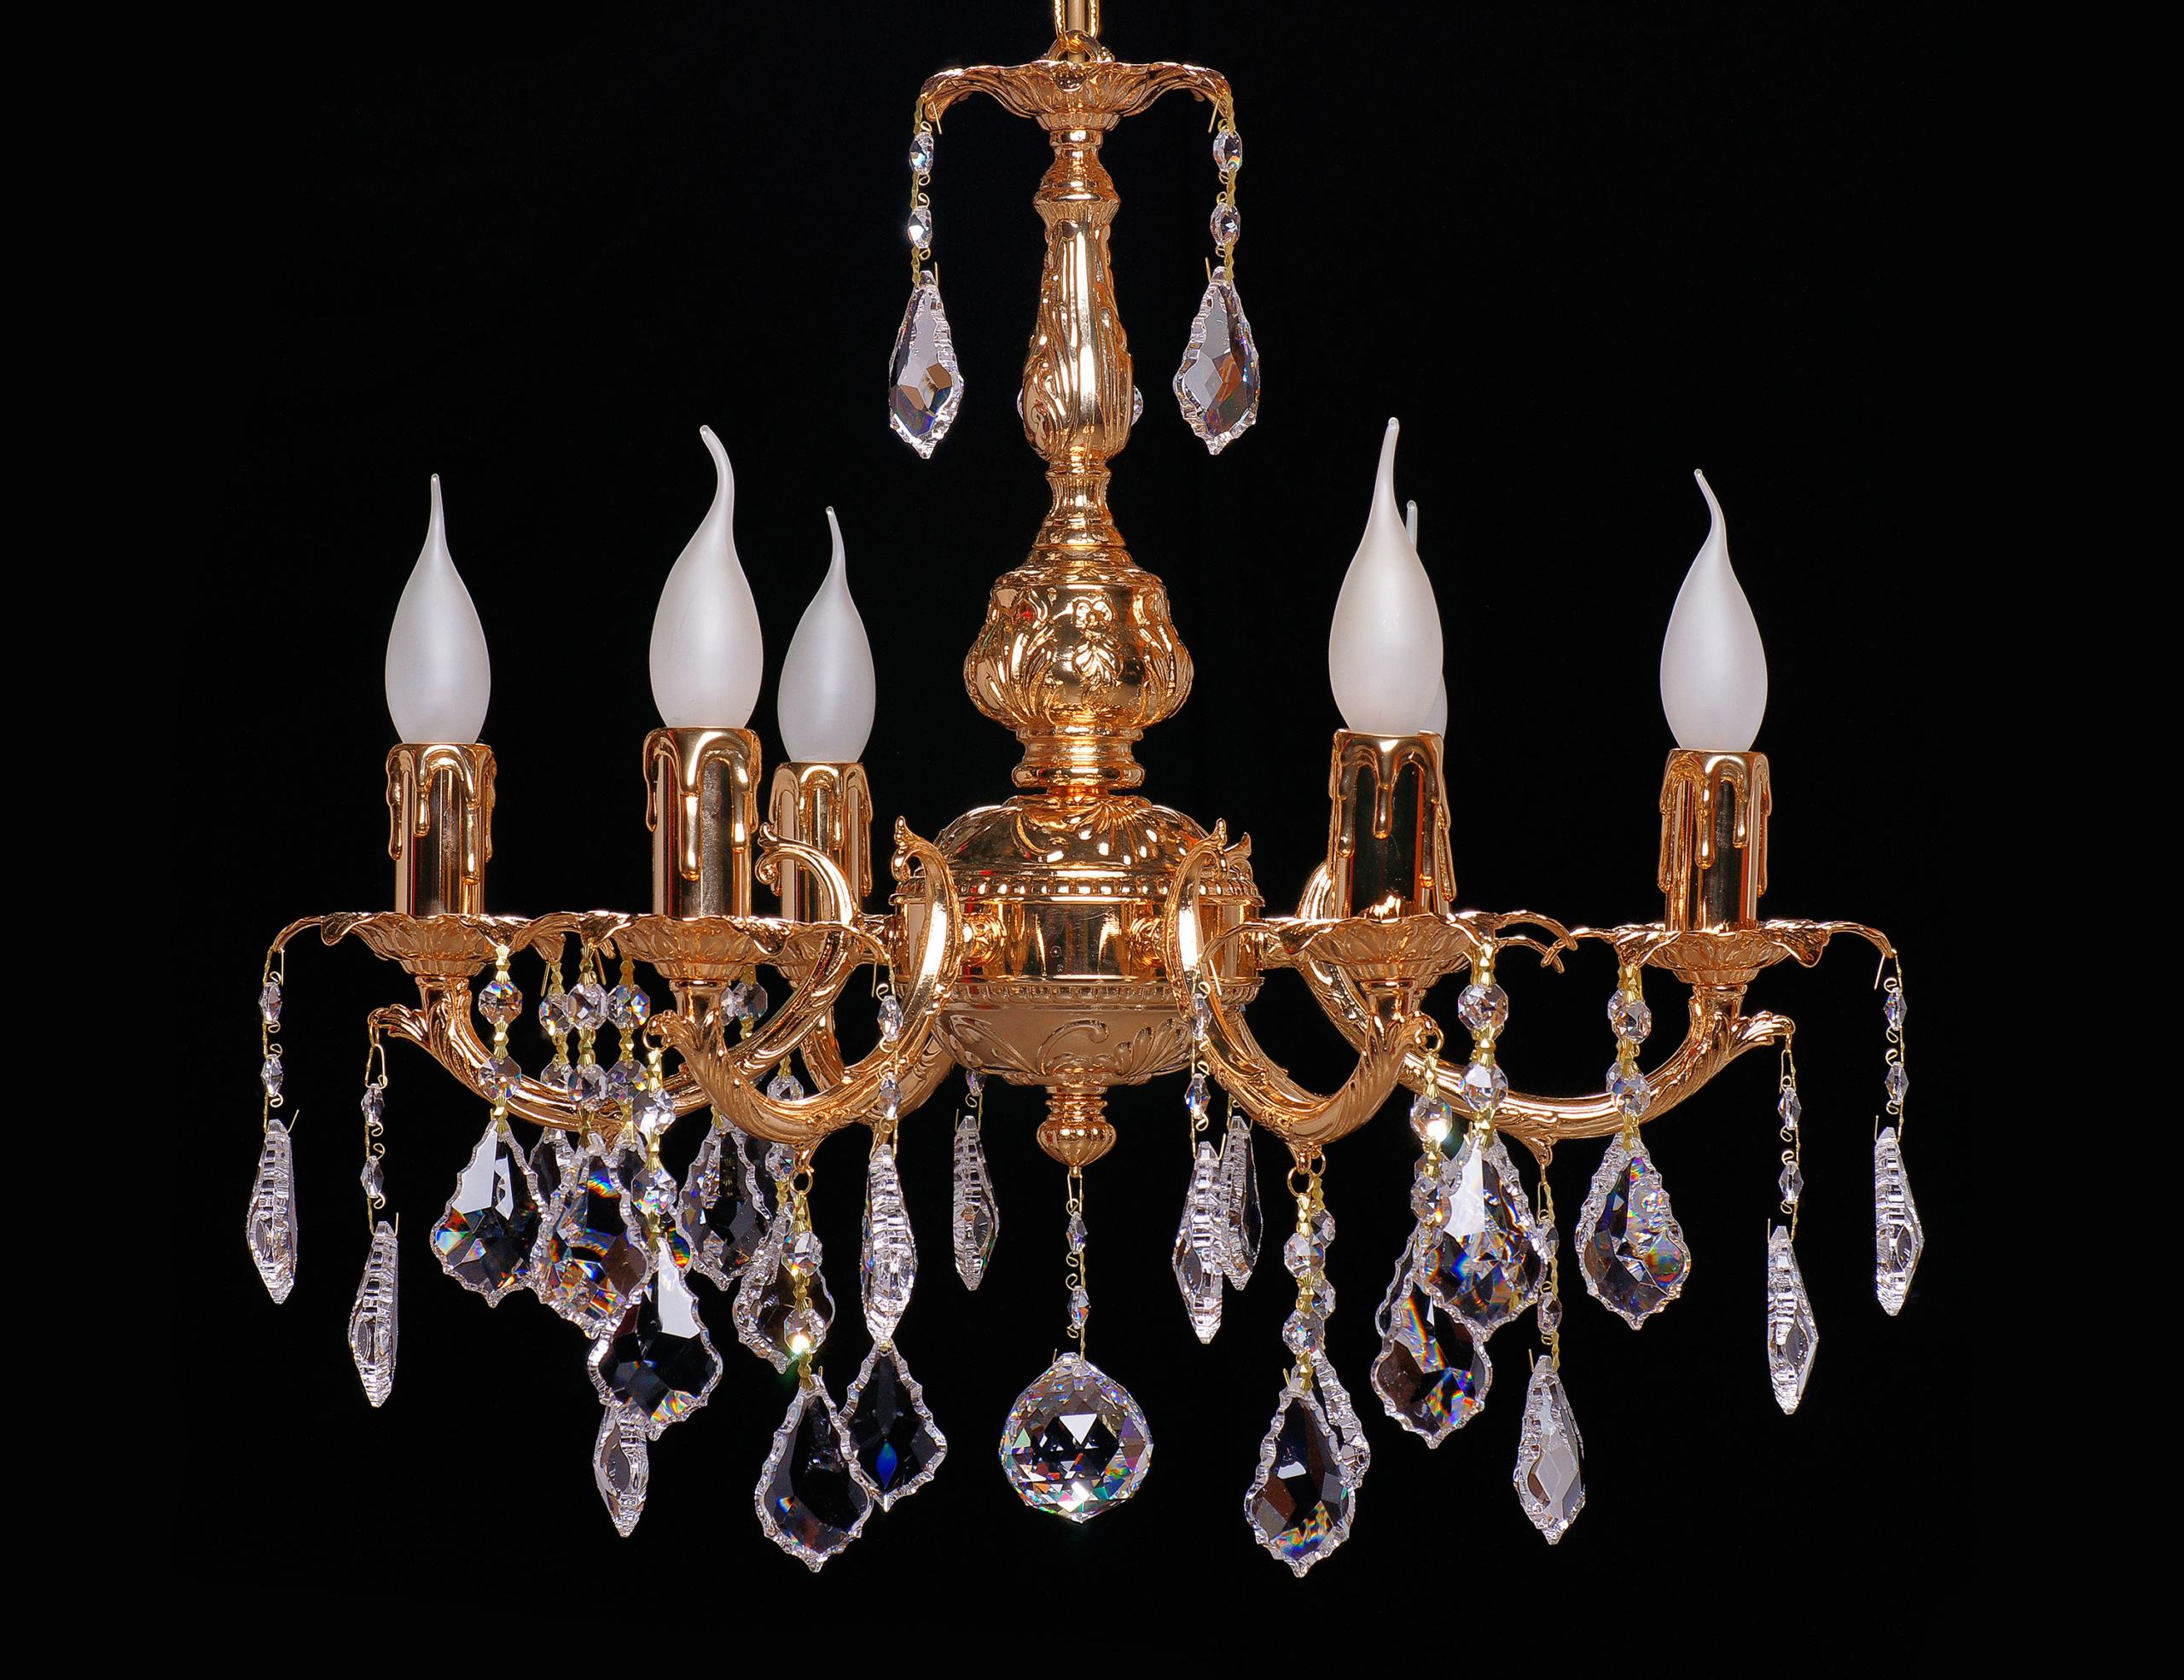 photography of chandeliers on a dark background